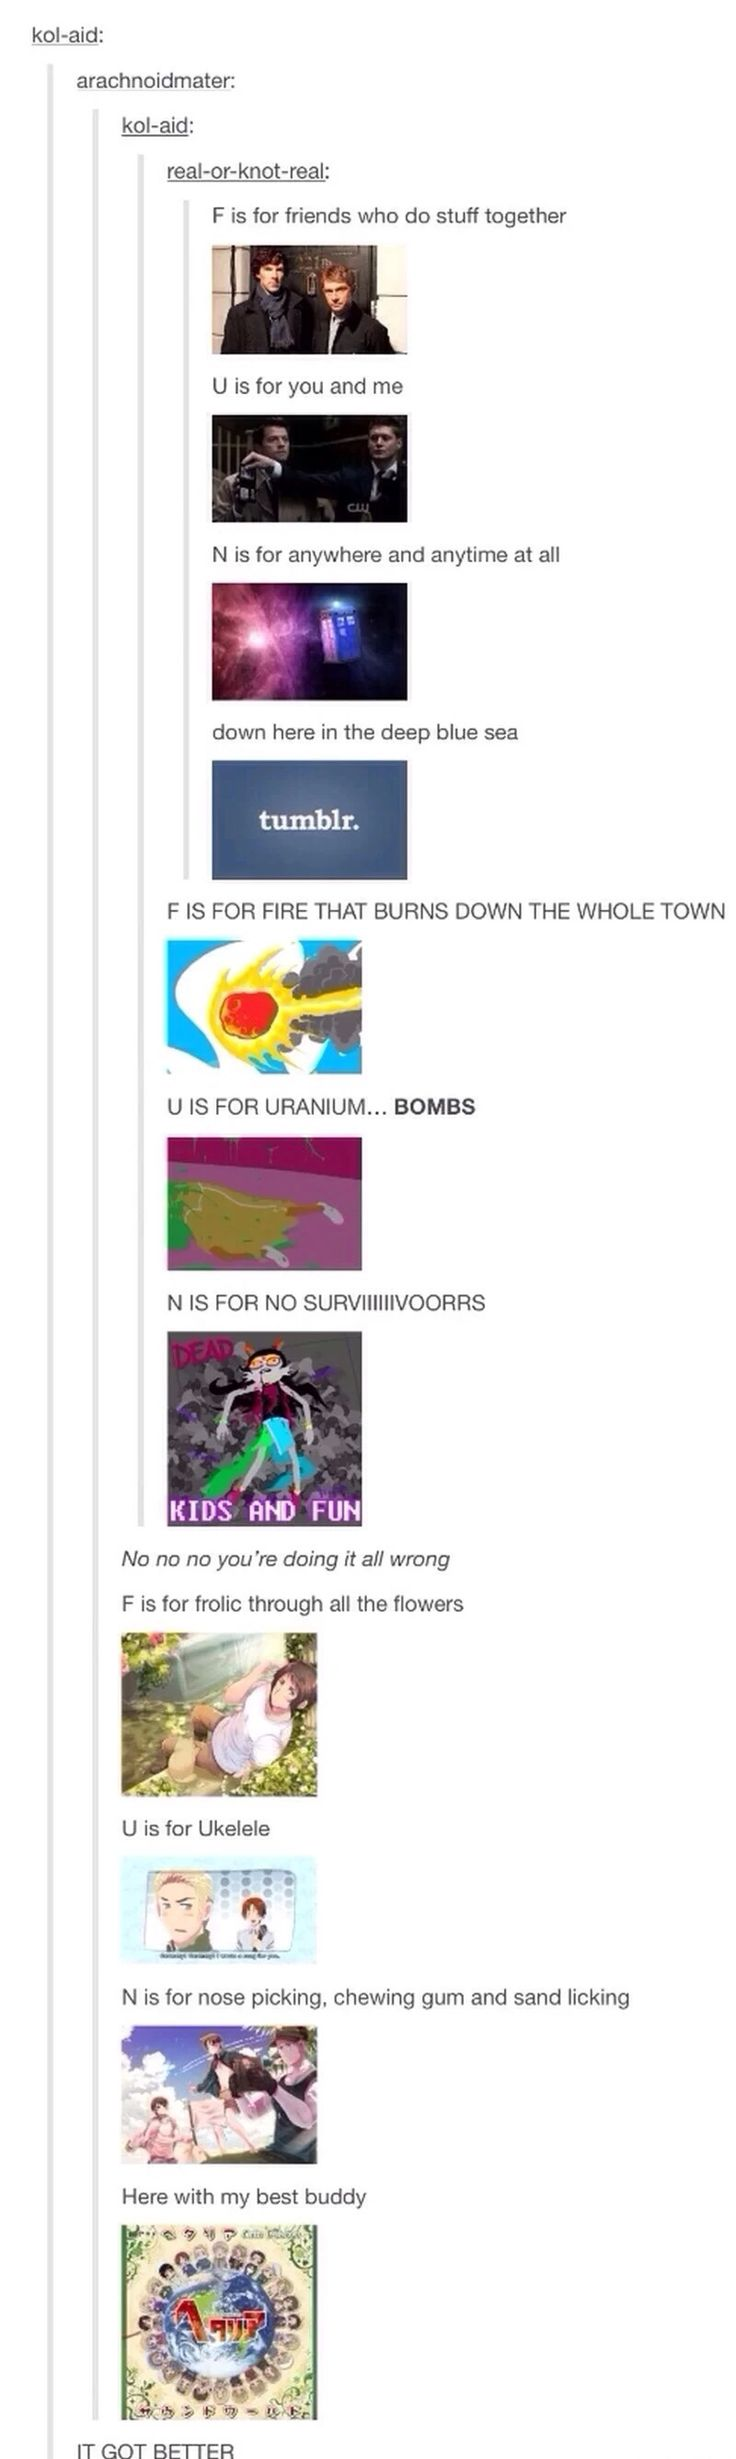 ((THIS IS TOO AMAZING SING ALONG TO THE SUPERWHOLOCK HOMESTUCK HETALIA FUN SONG))